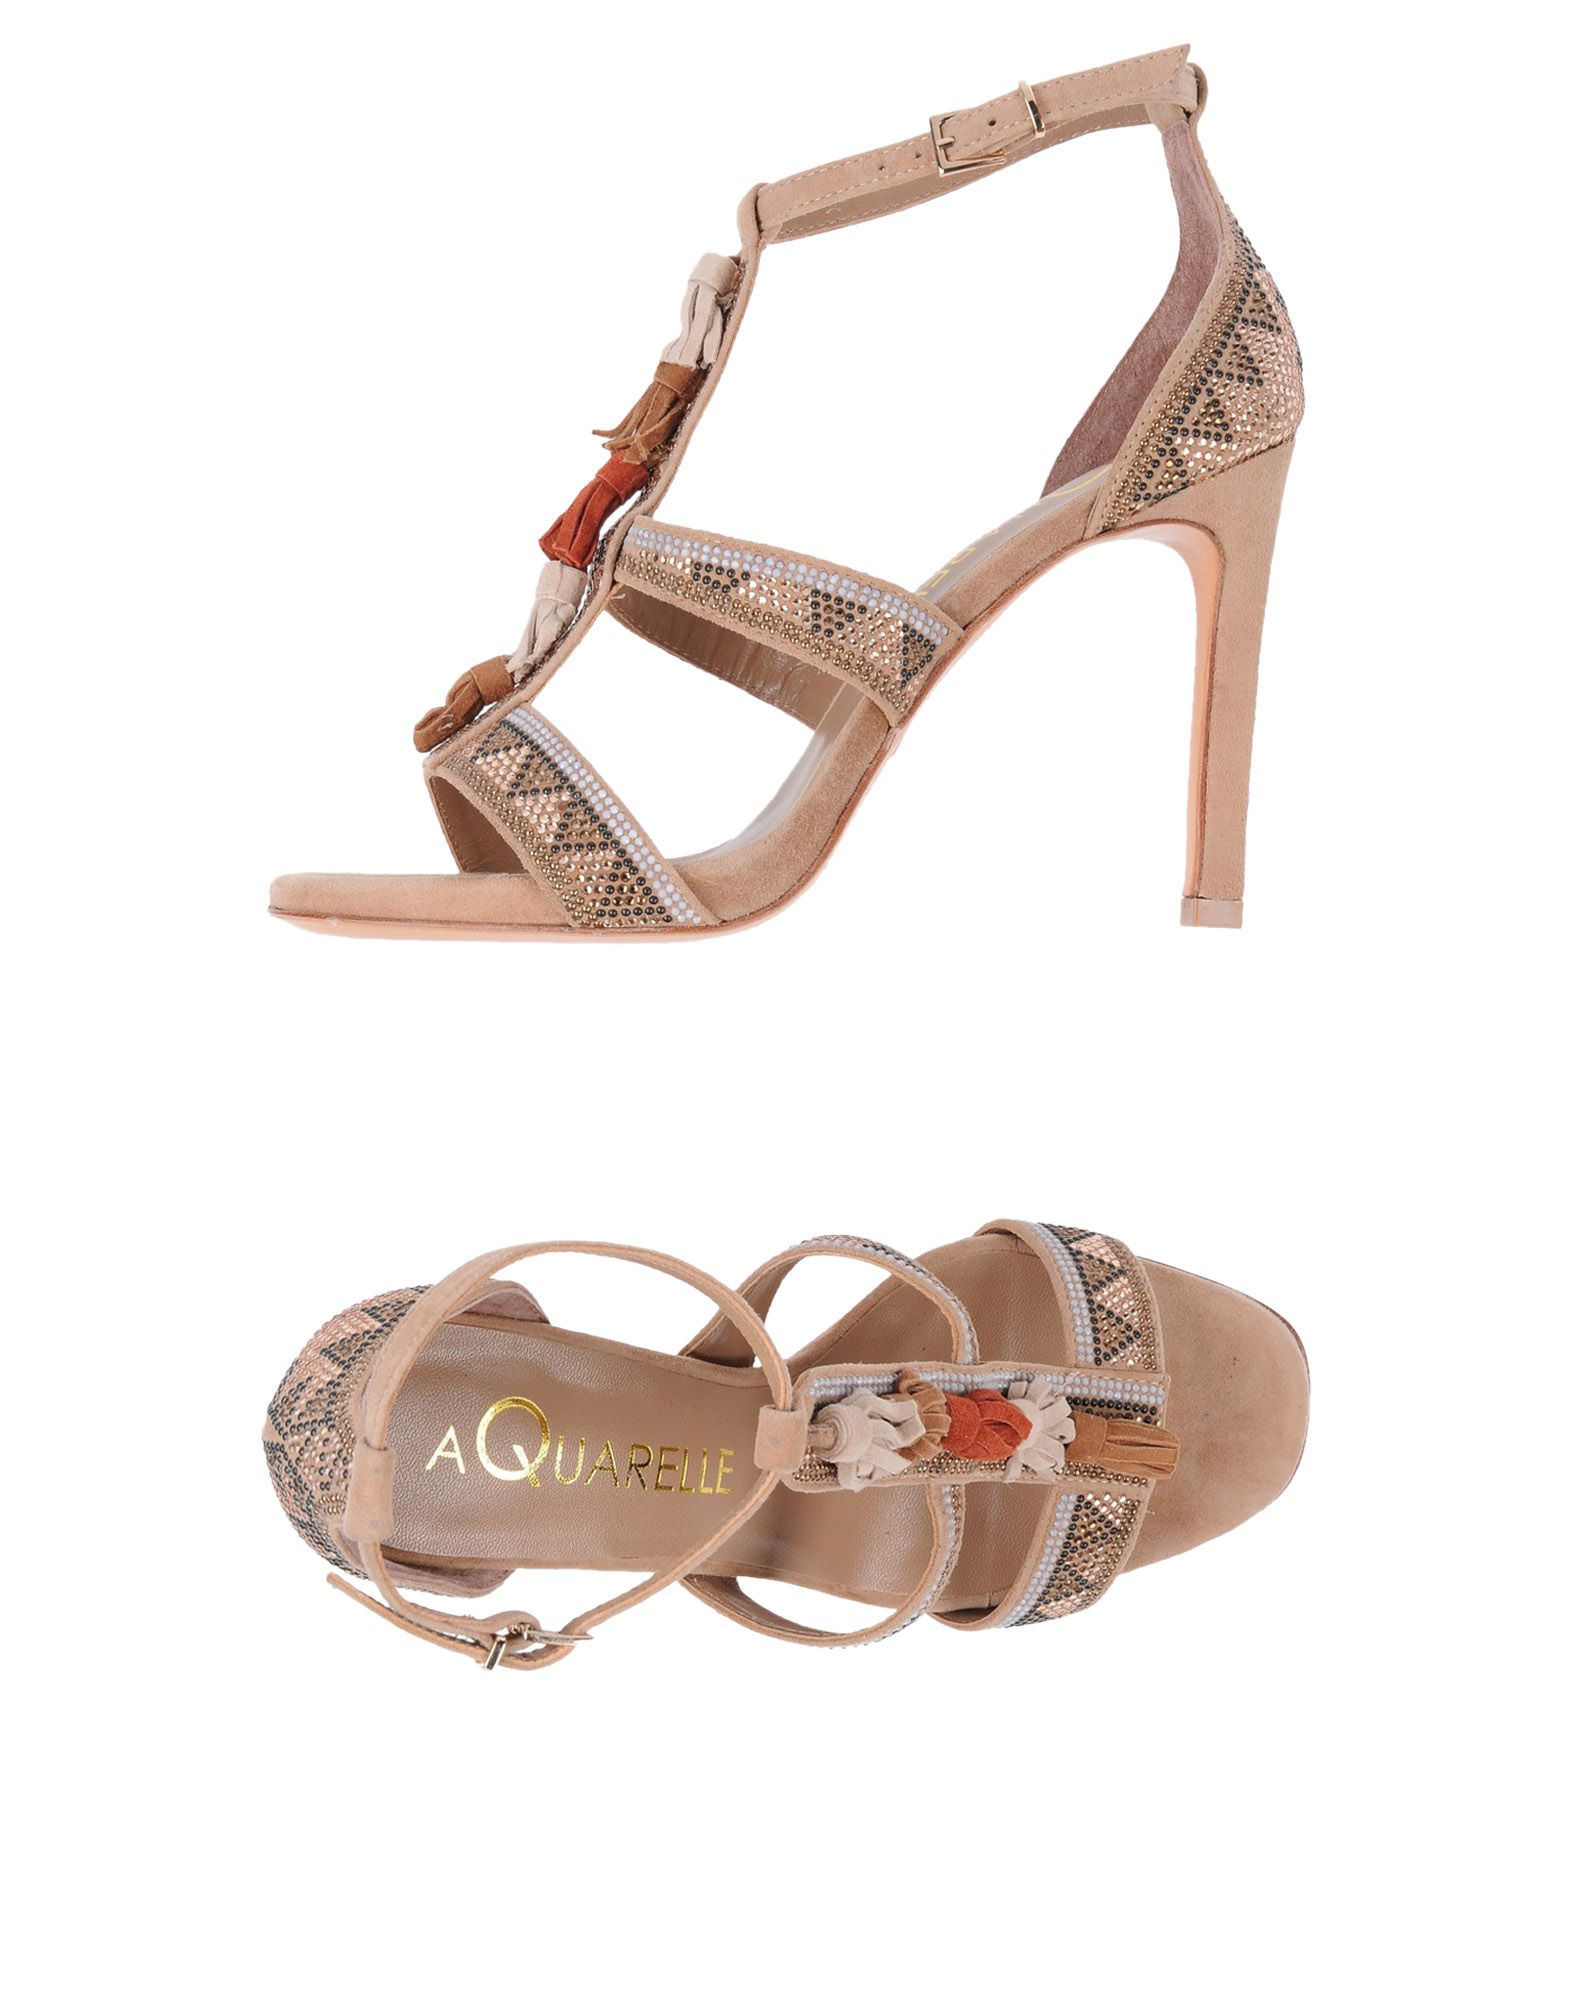 Aquarelle Sandals - Women Aquarelle Australia Sandals online on  Australia Aquarelle - 11471647SS f6c7b1